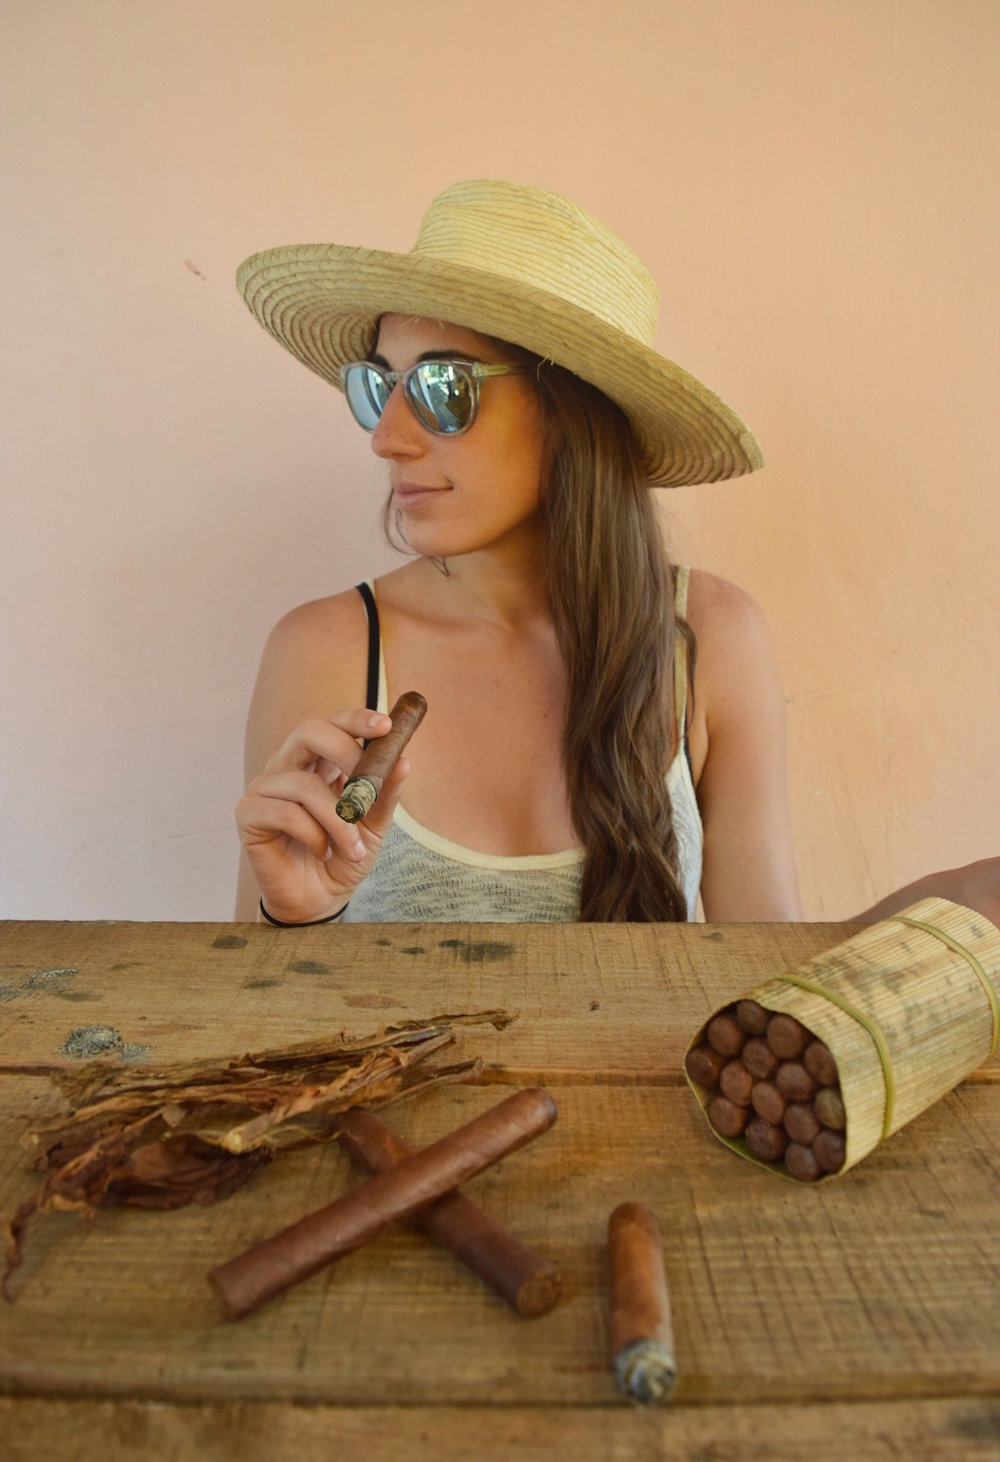 Smoking just rolled cigars  |  Viñales, Cuba